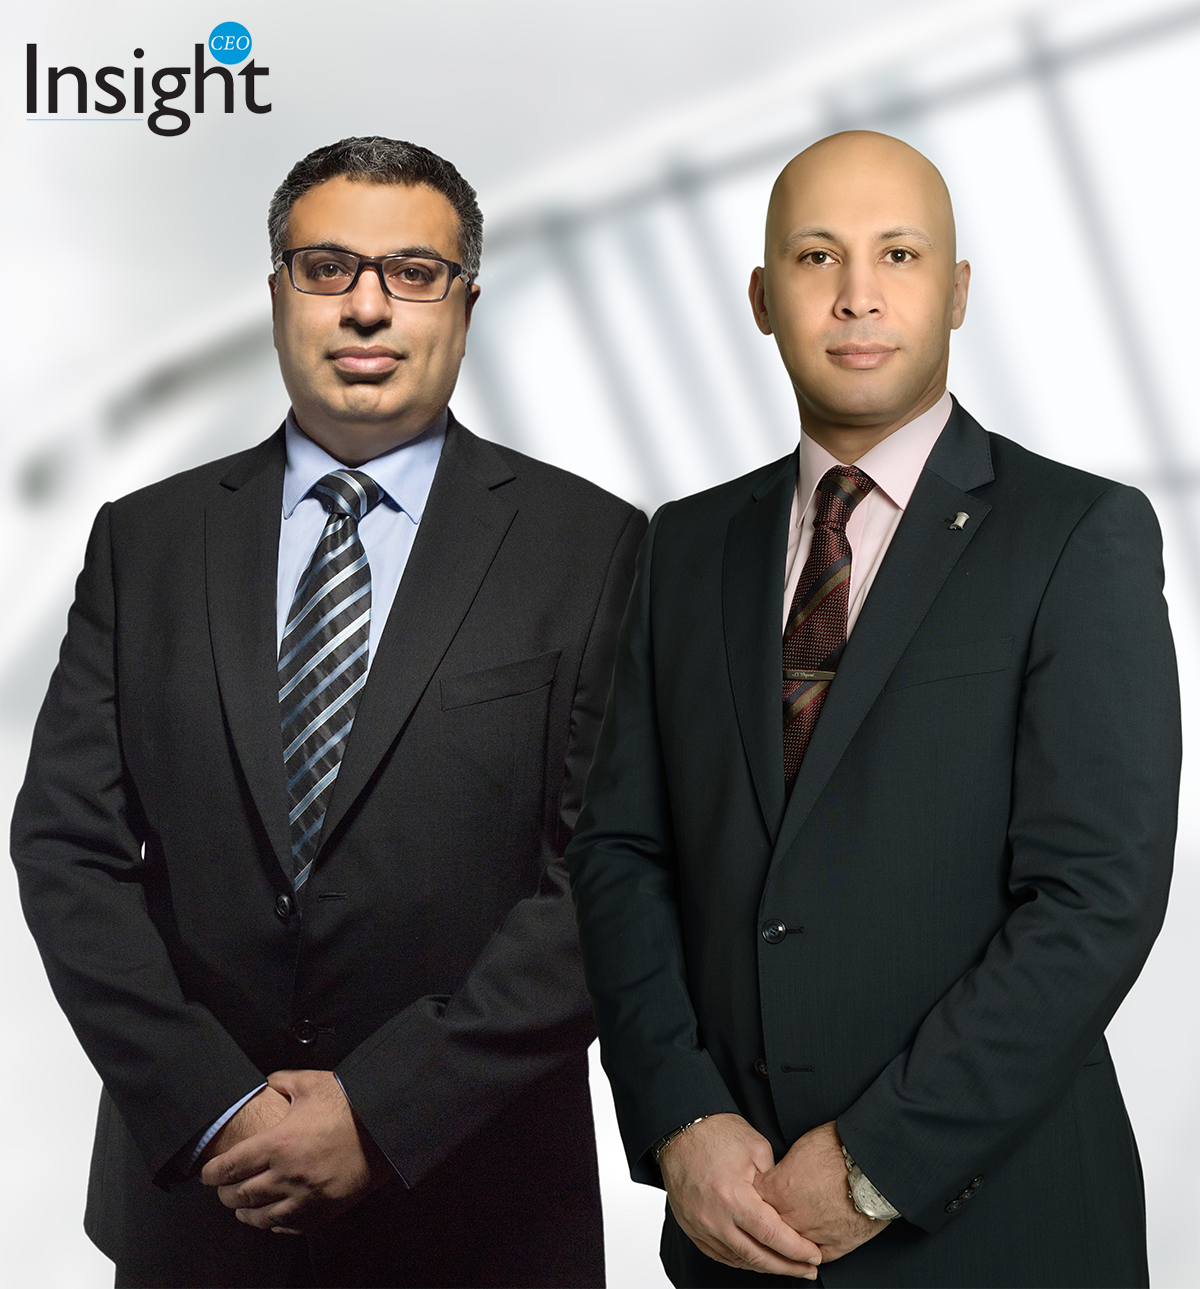 The Government Future Financing 2030 Program – Interview with the two heads of Elite Capital & Co. Limited, Dr. Faisal Khazaal, PhD. LLD. KGCC and Mr. George Matharu, MBA